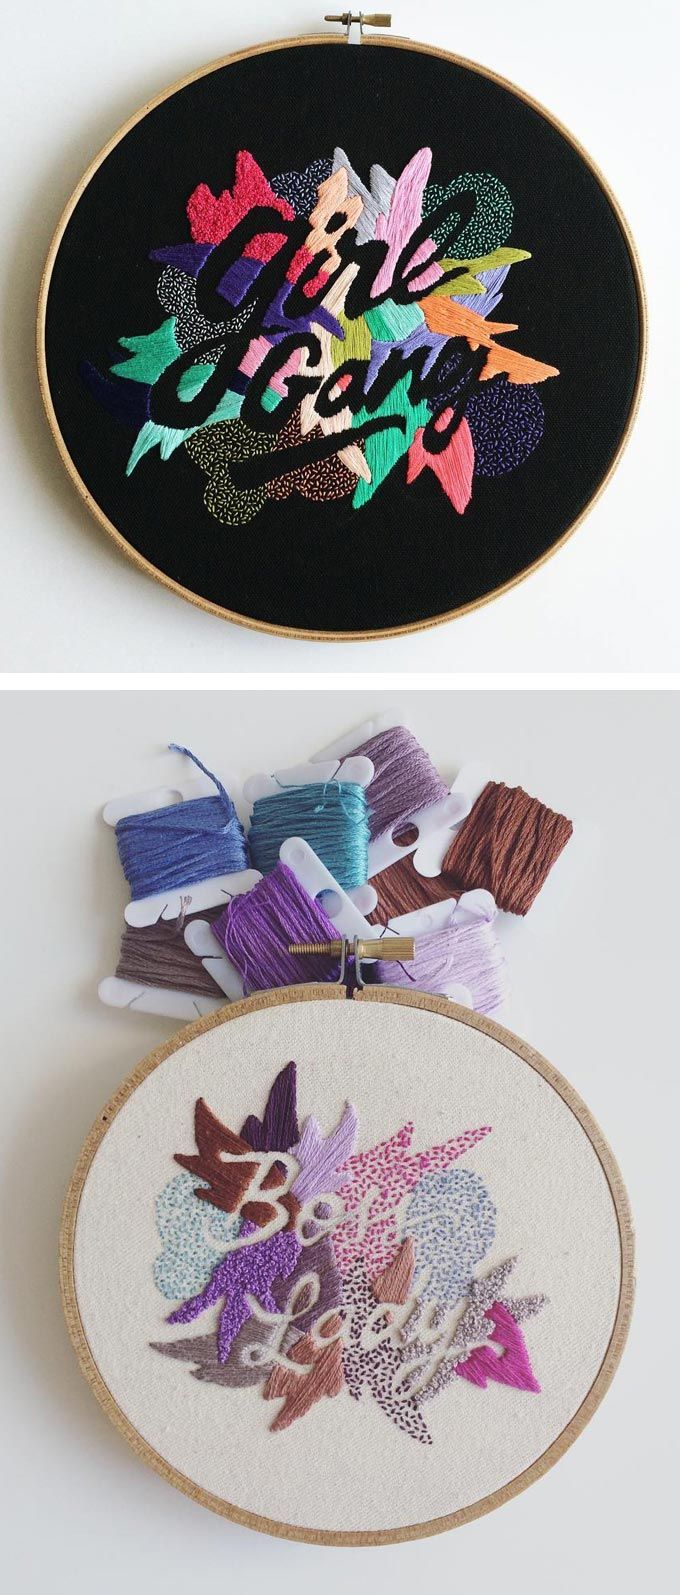 Valeria Molinari's Embroidered Sayings Inspired by Love of Words